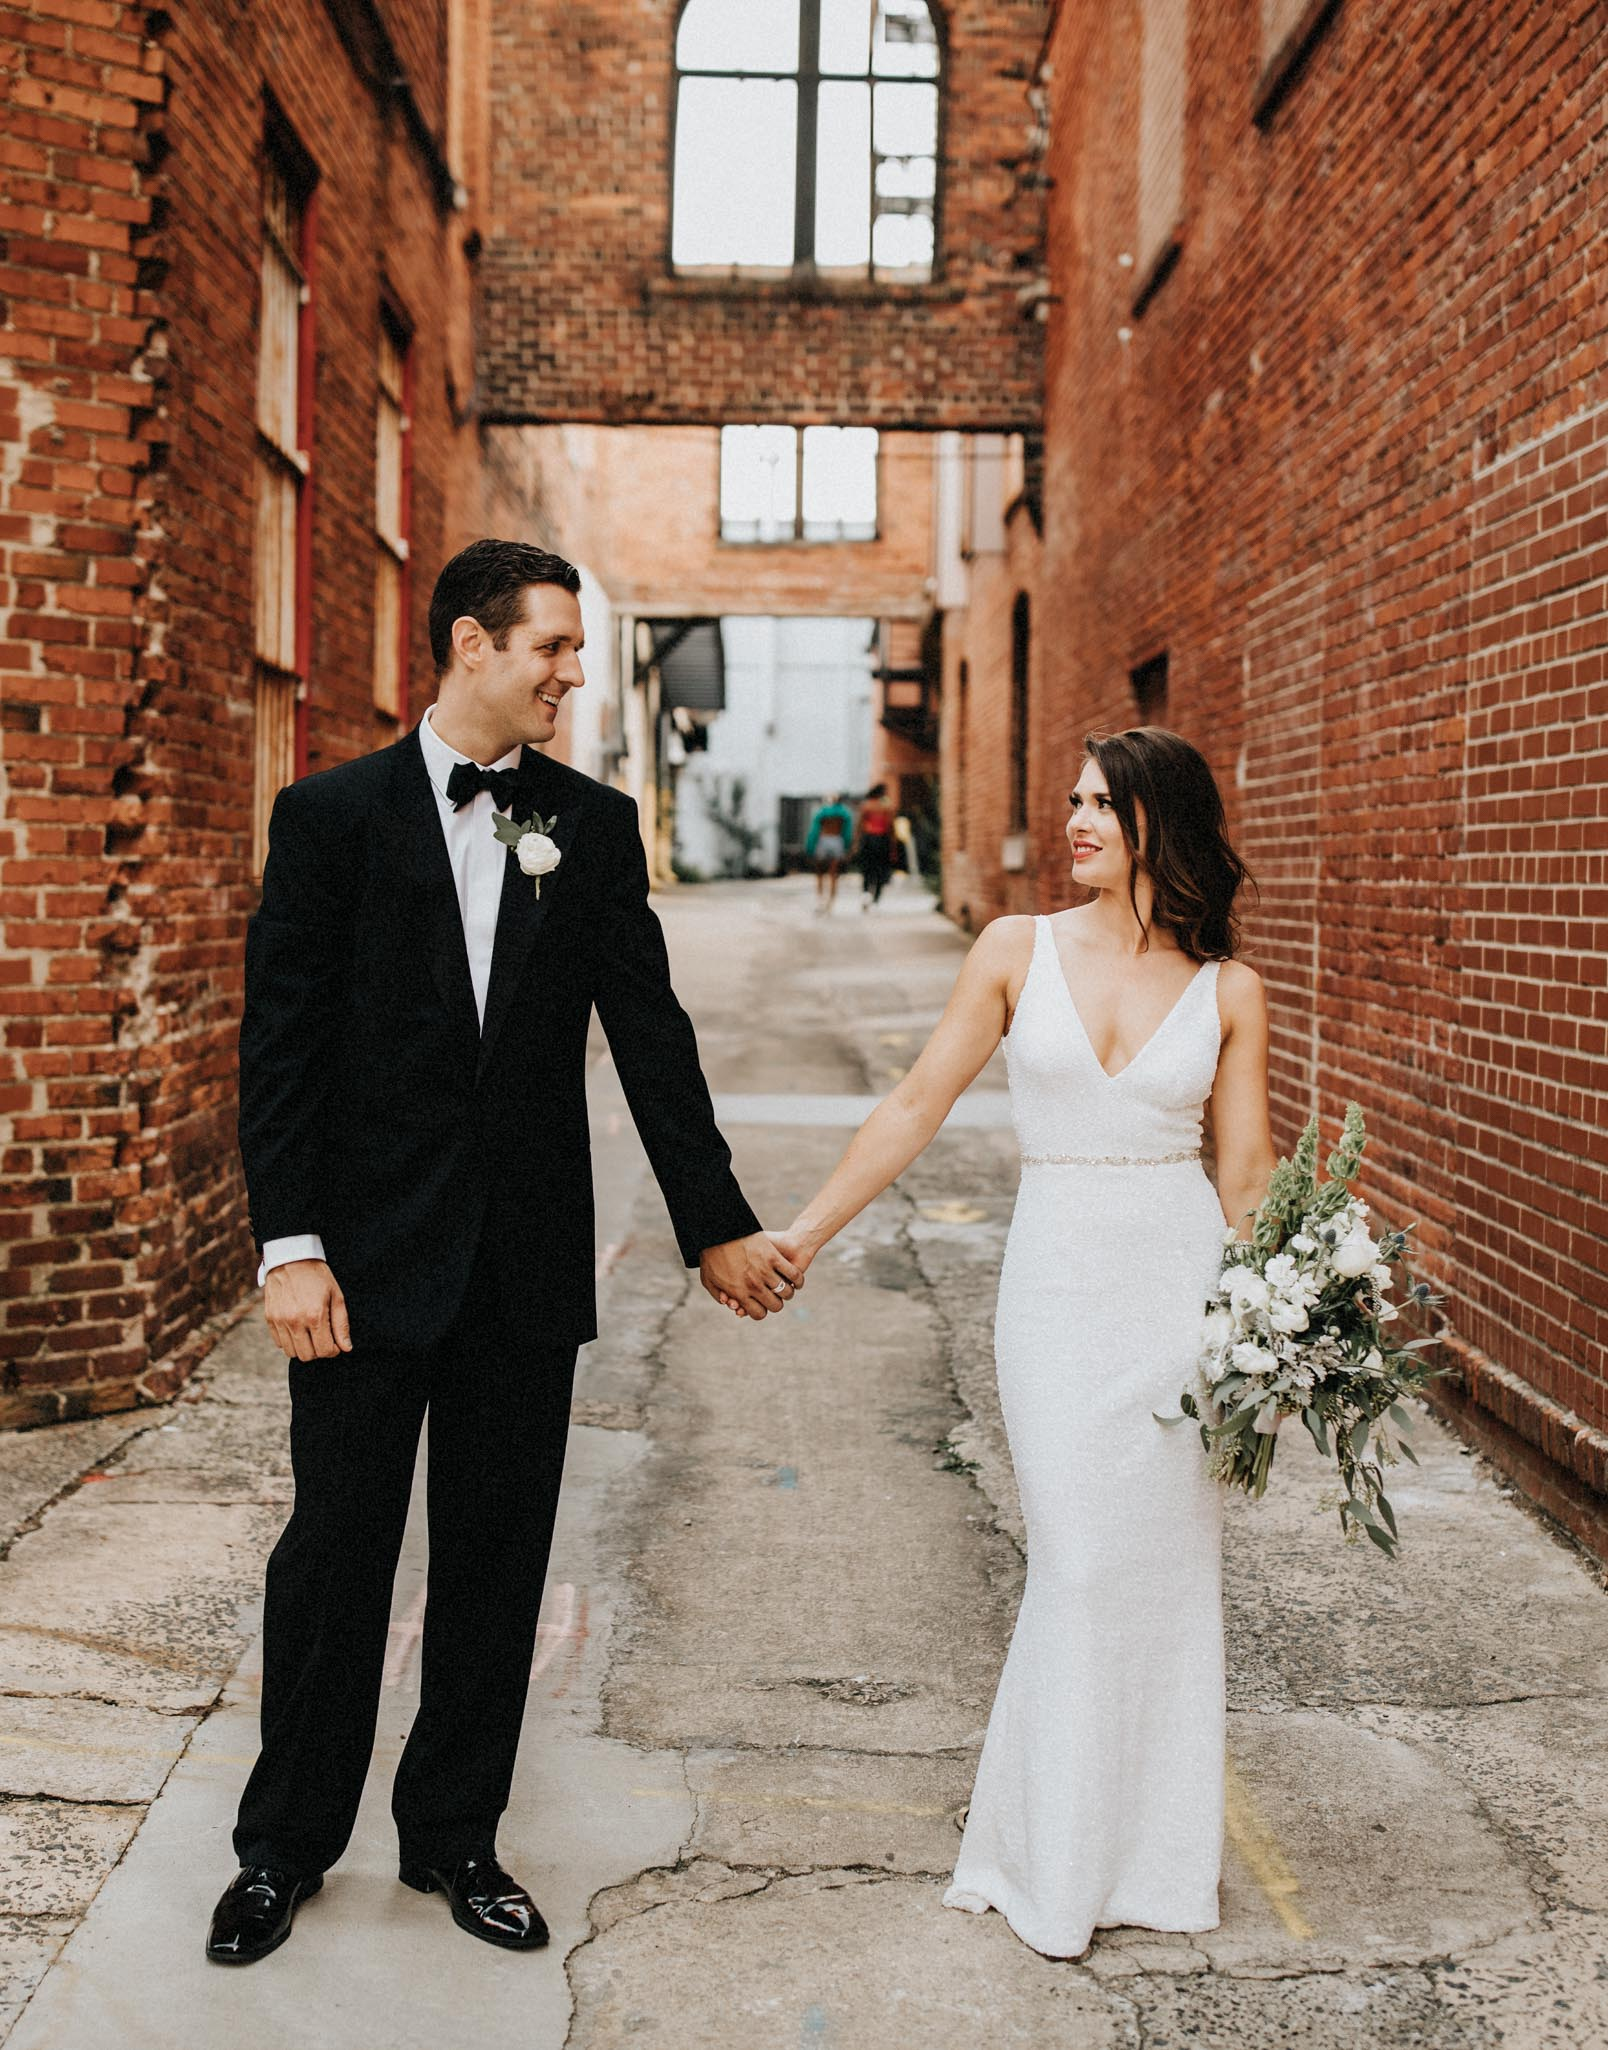 Southern Bride and Groom